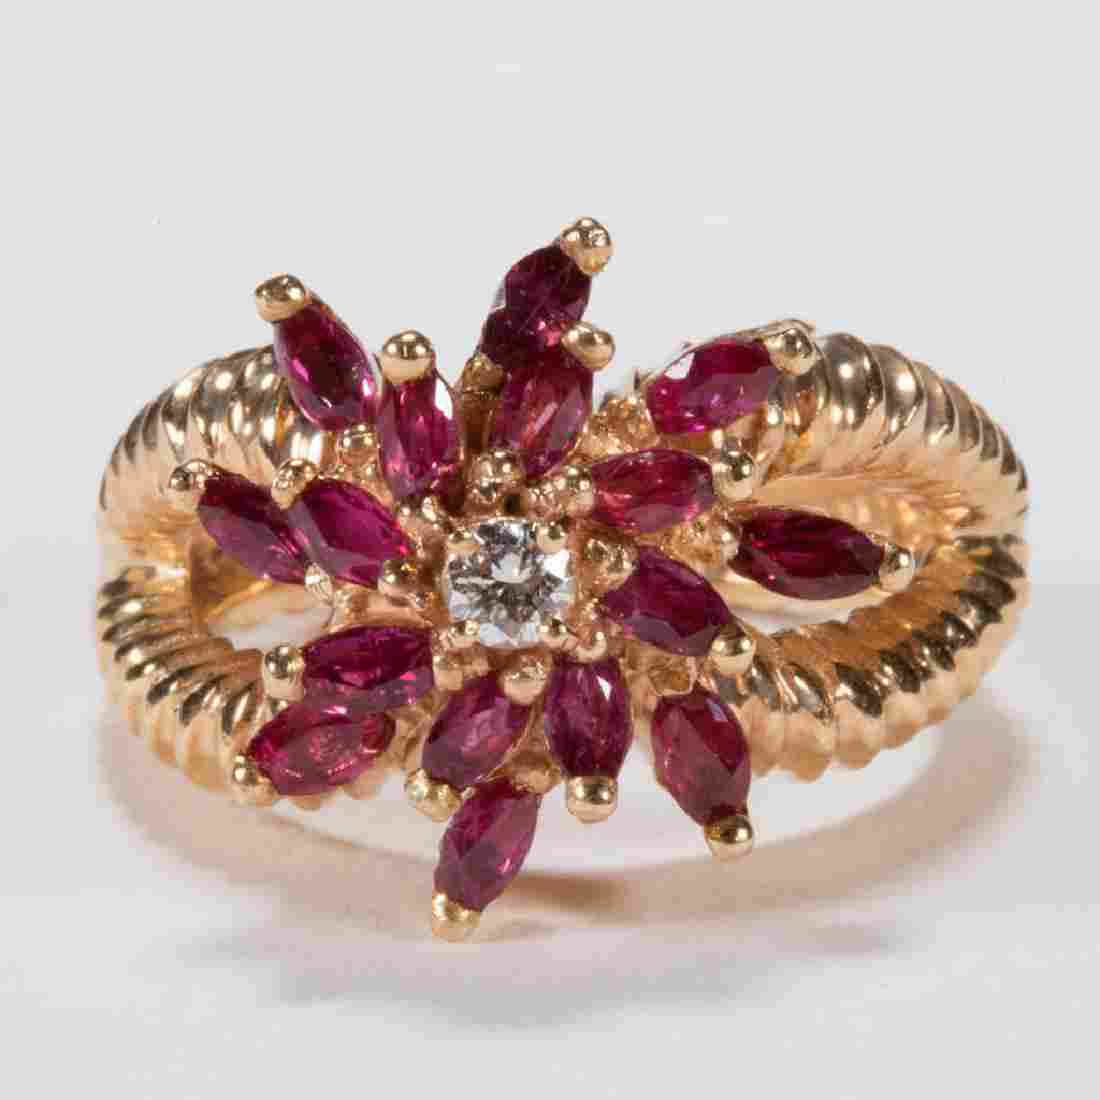 VINTAGE 14K GOLD DIAMOND AND RUBY LADY'S RING